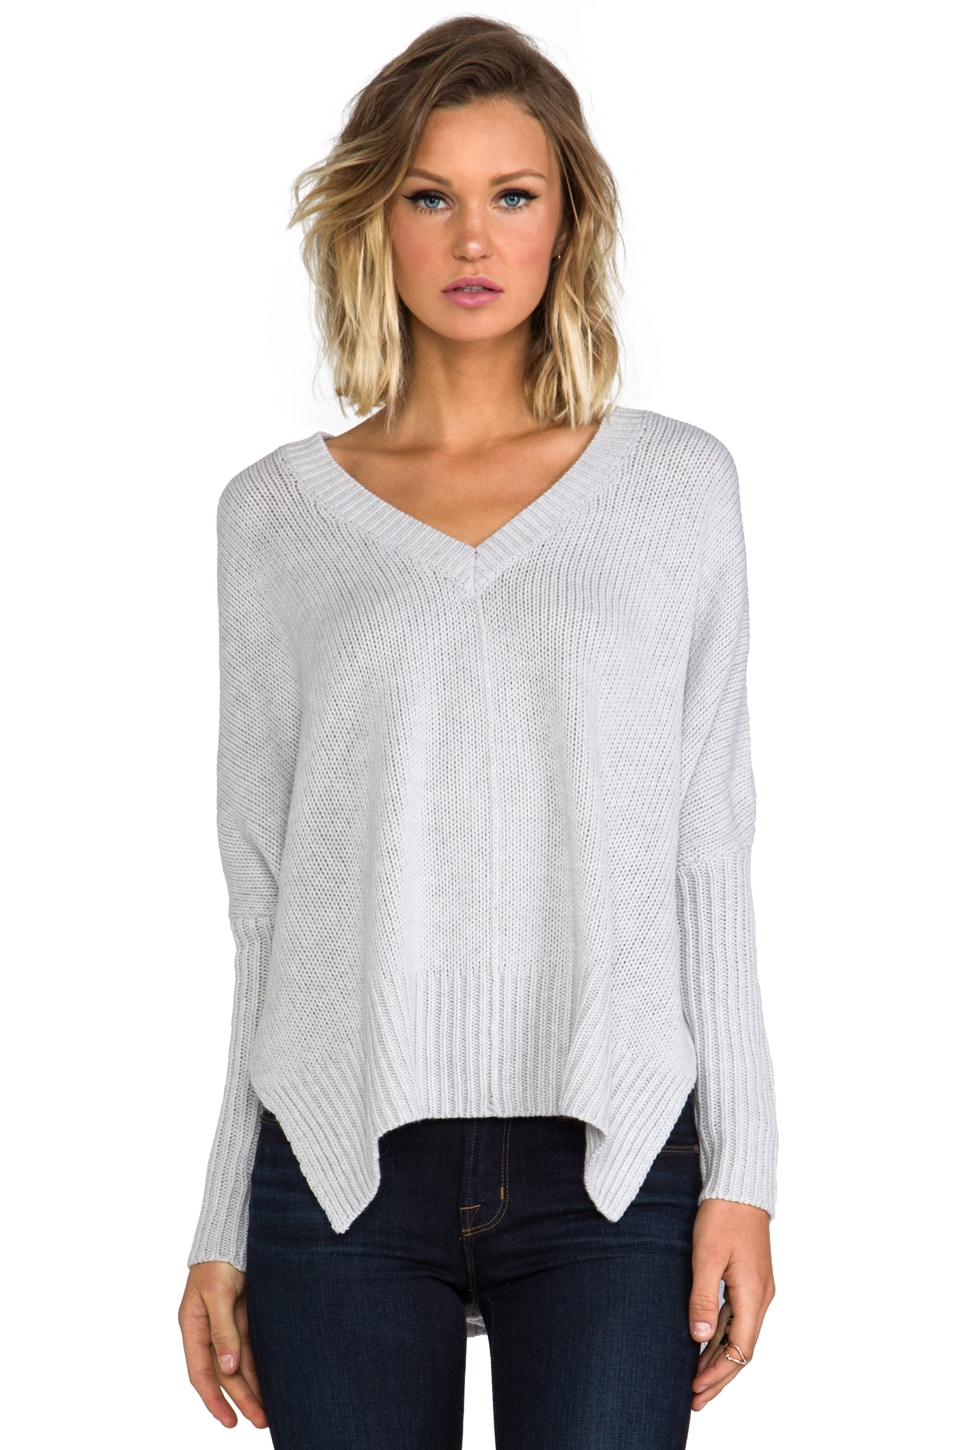 Feel the Piece Darcy Sweater in Cement